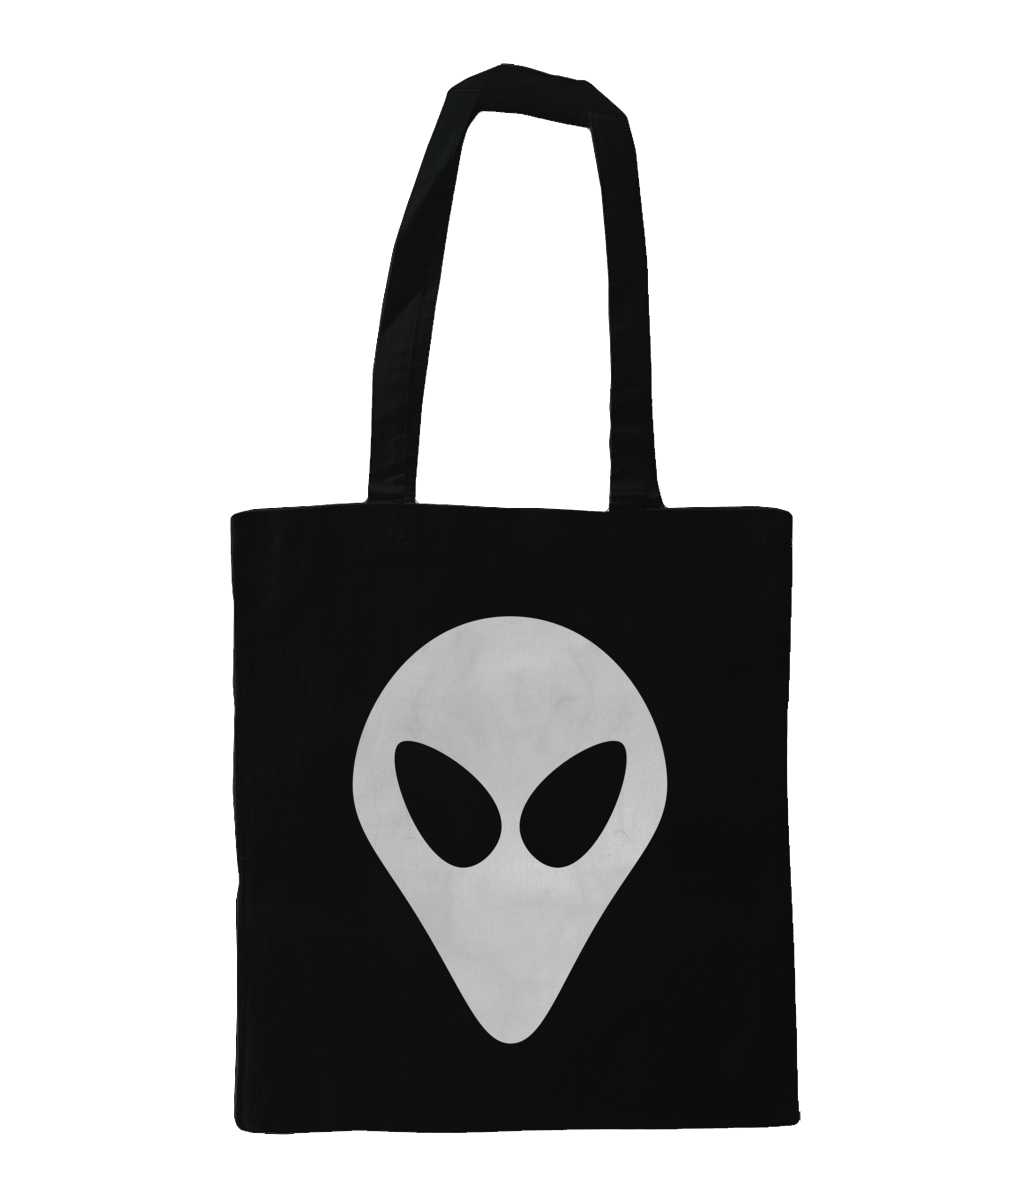 Timothy - Tote Bag - Abduction 51 Extraterrestrial Streetwear | UFO & Alien Inspired